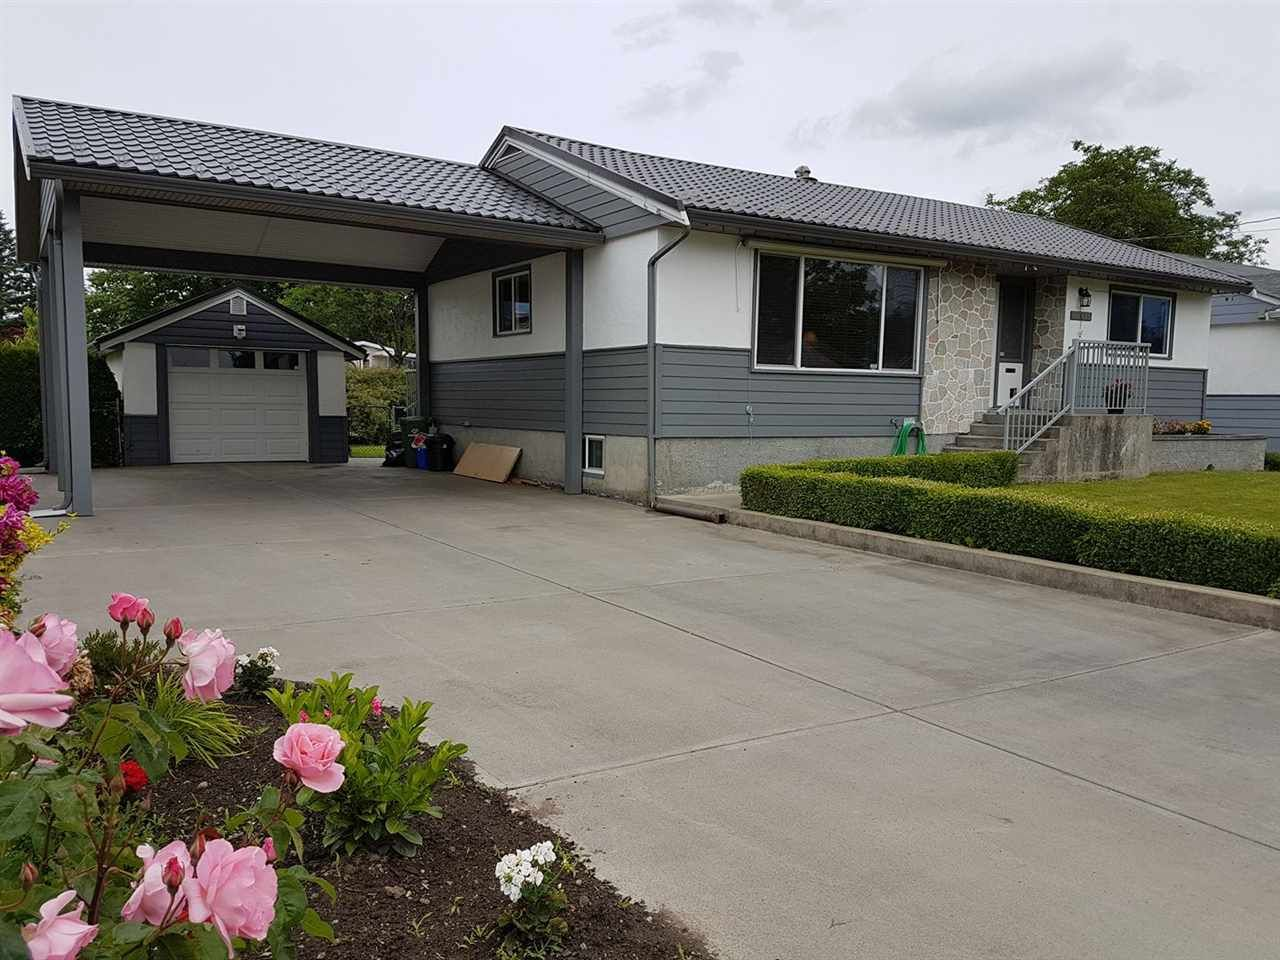 Main Photo: 46615 FRASER Avenue in Chilliwack: Chilliwack E Young-Yale House for sale : MLS®# R2178819